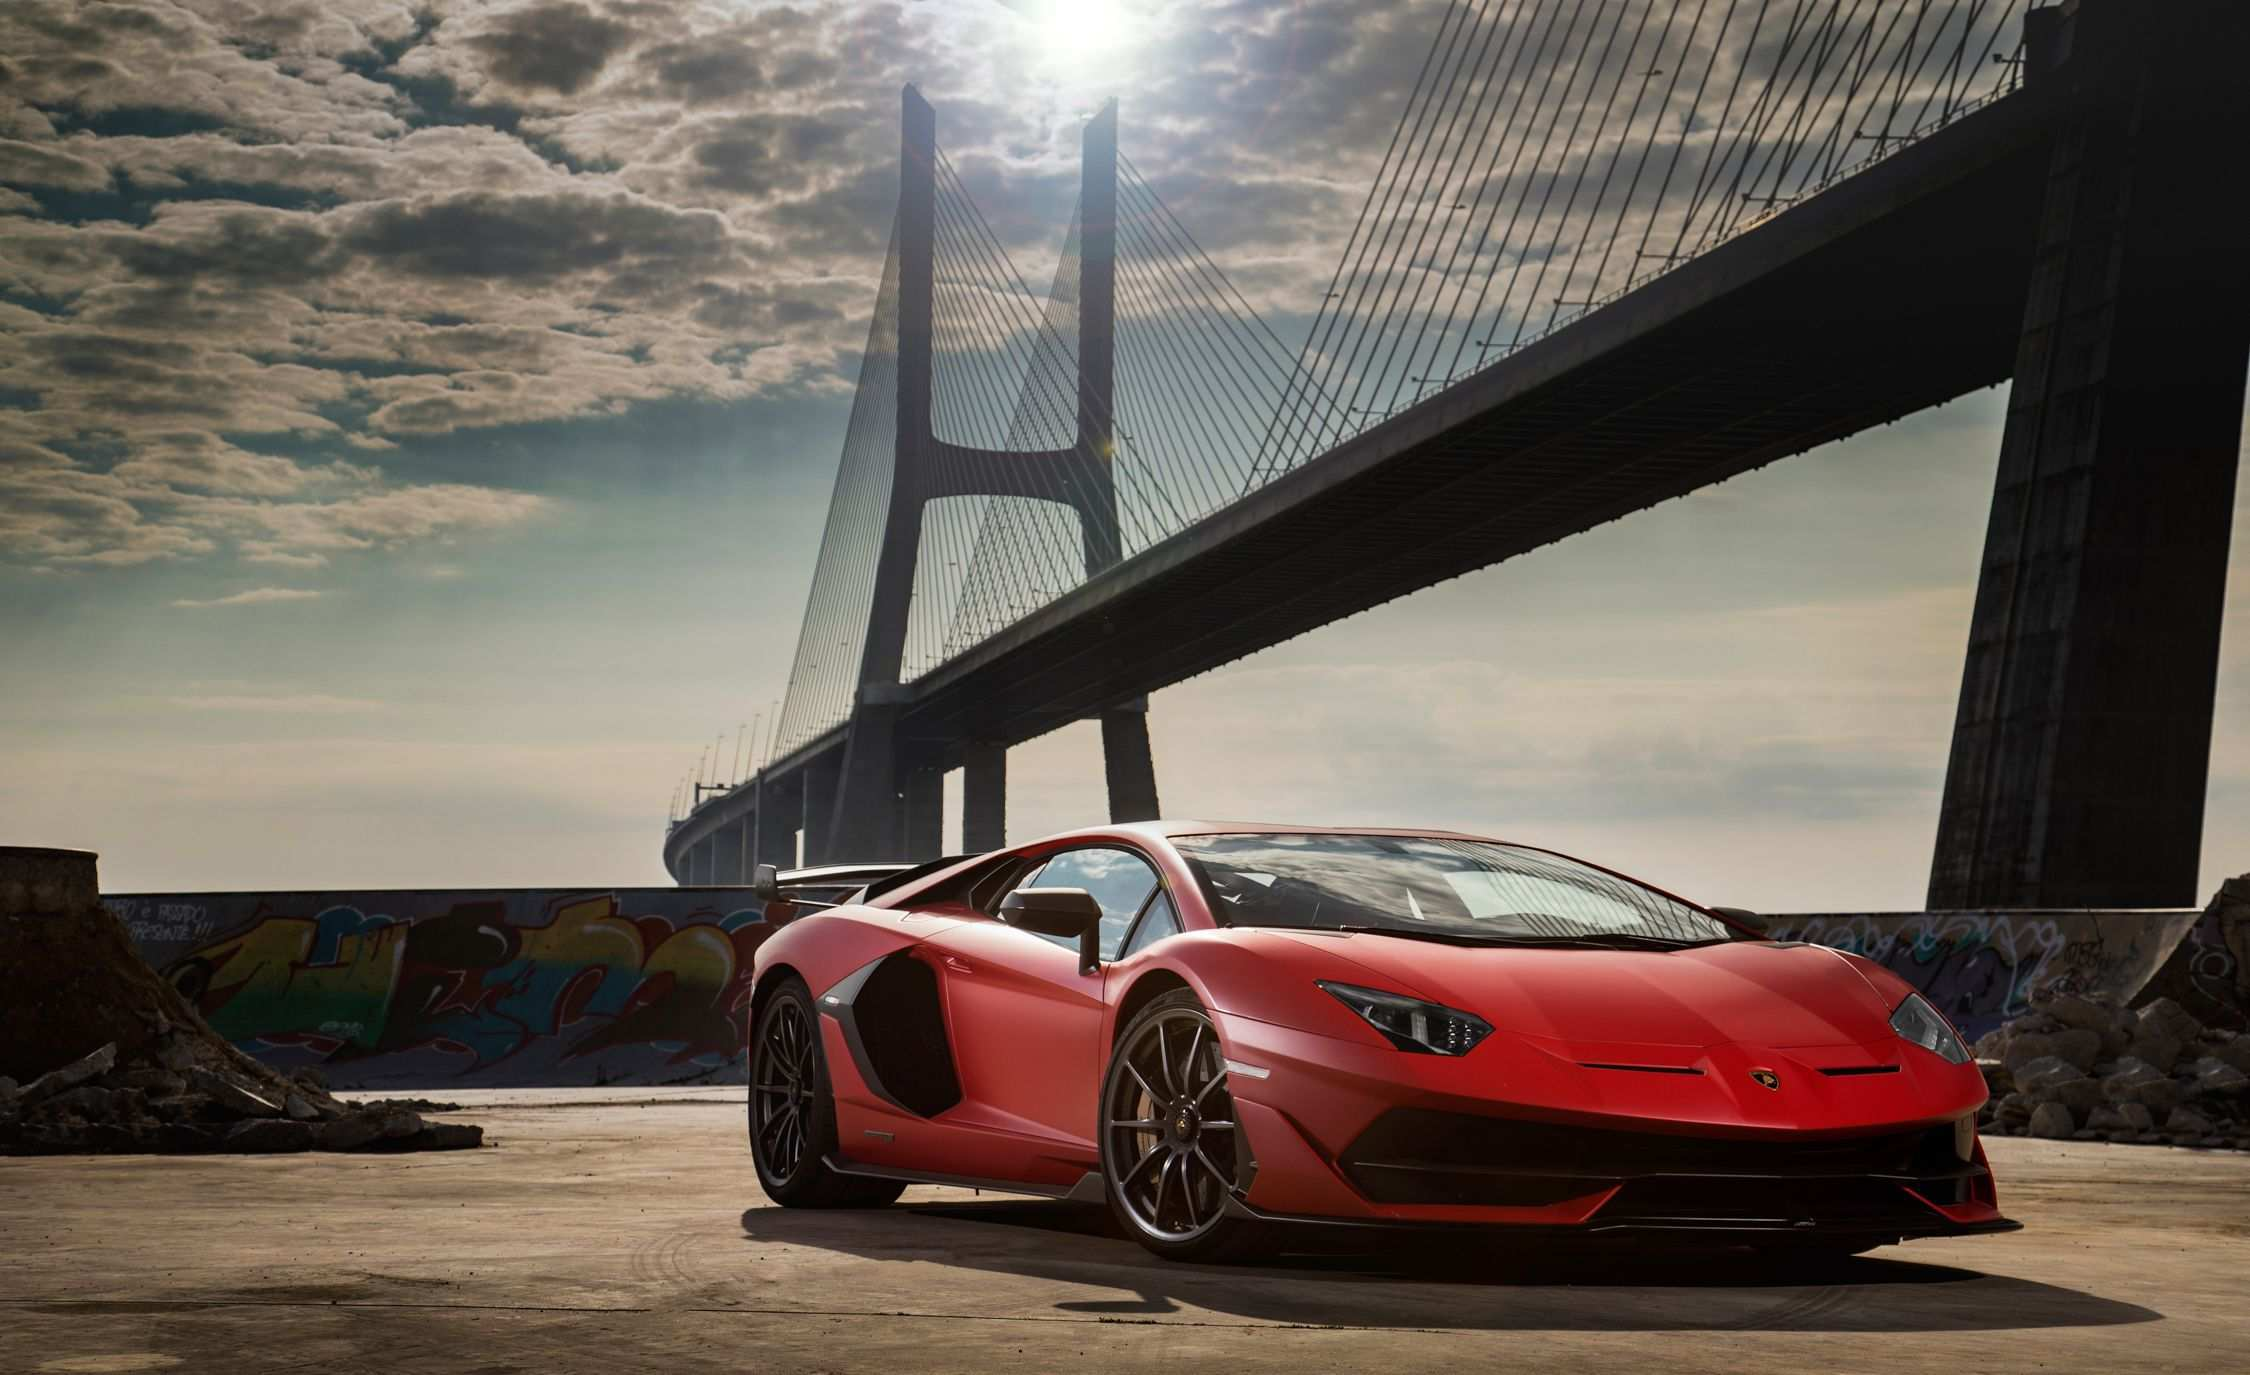 28 Great 2020 Lamborghini Svj Prices by 2020 Lamborghini Svj